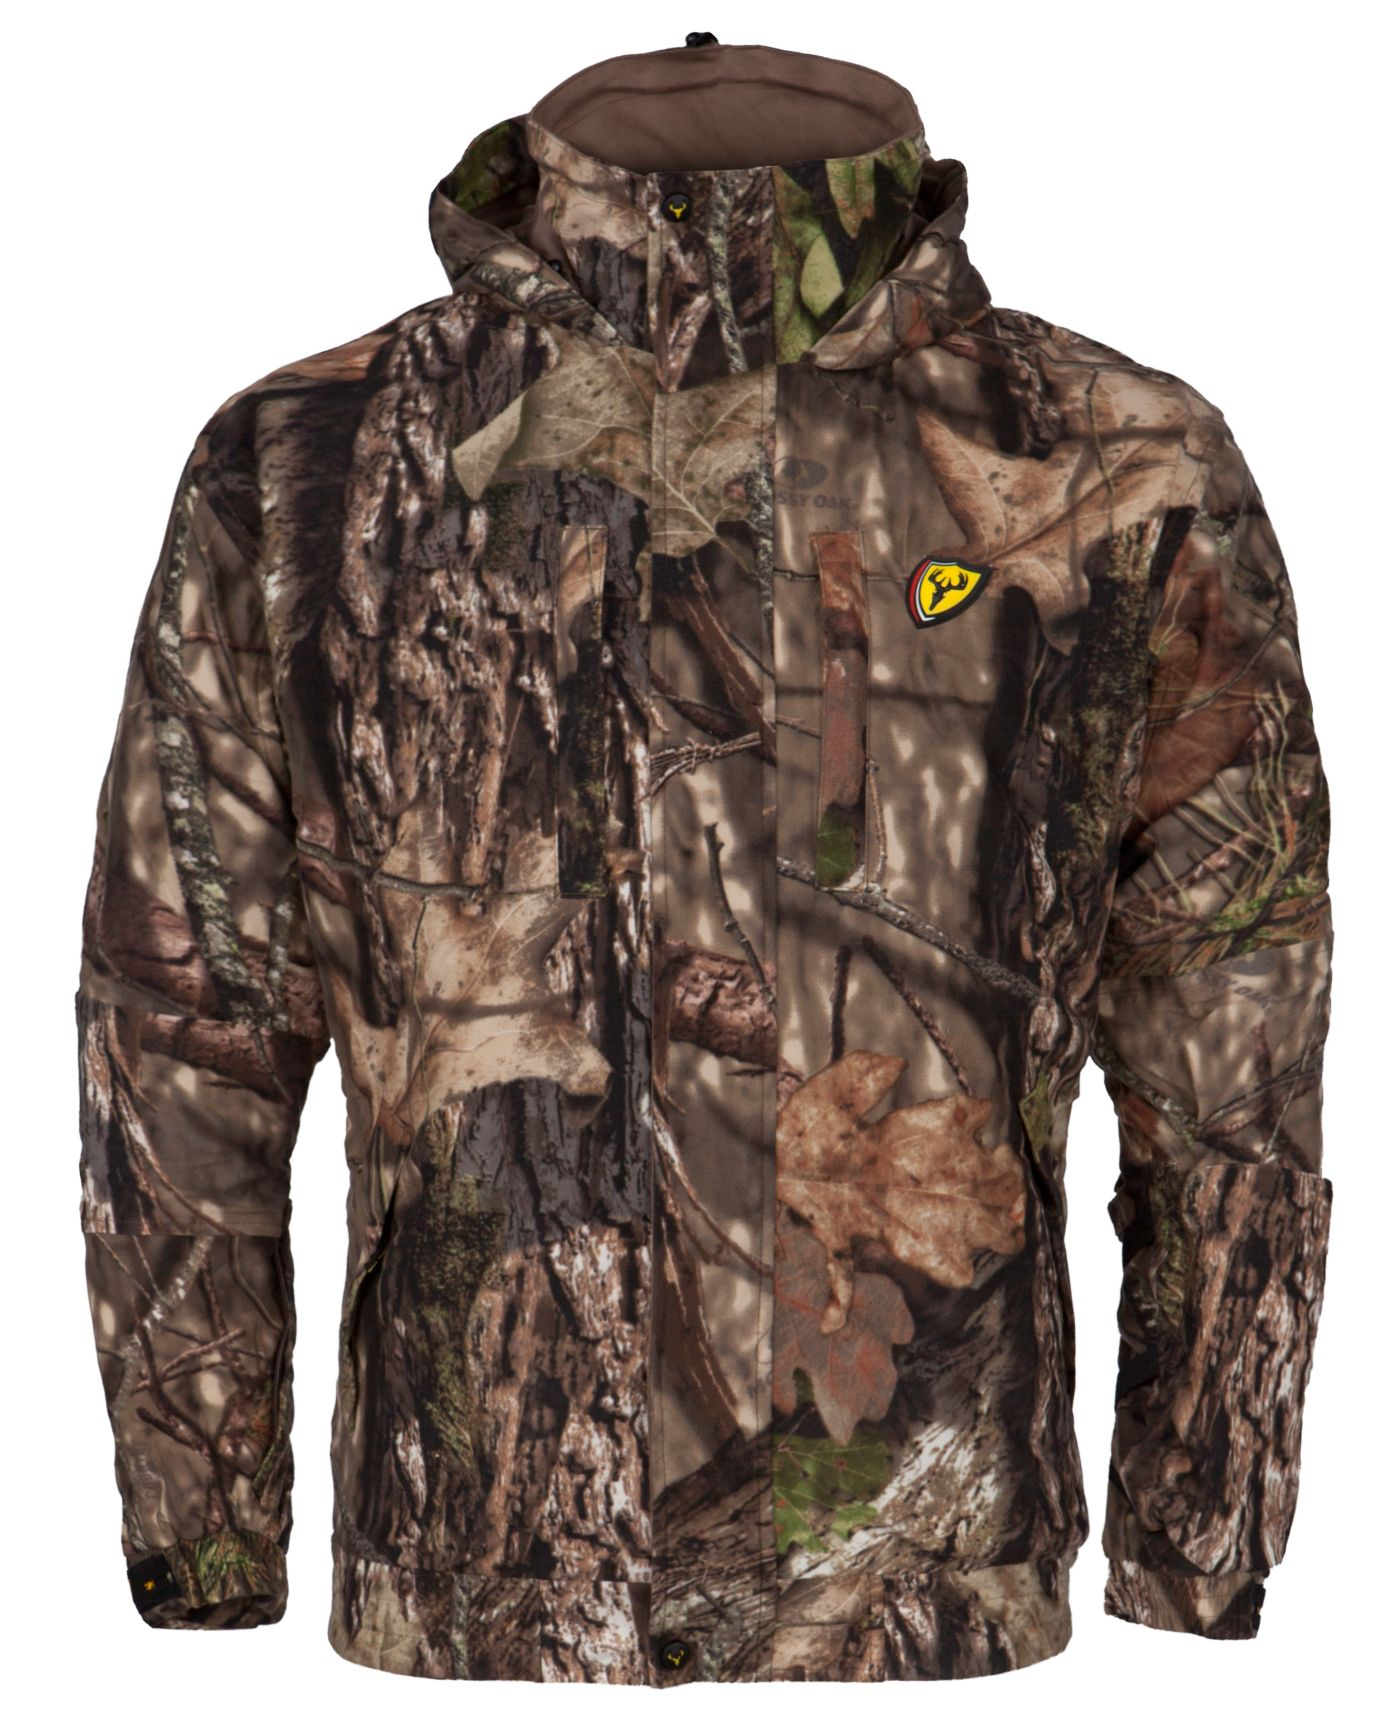 Scentblocker Men's Outfitter 3-in-1 Jacket